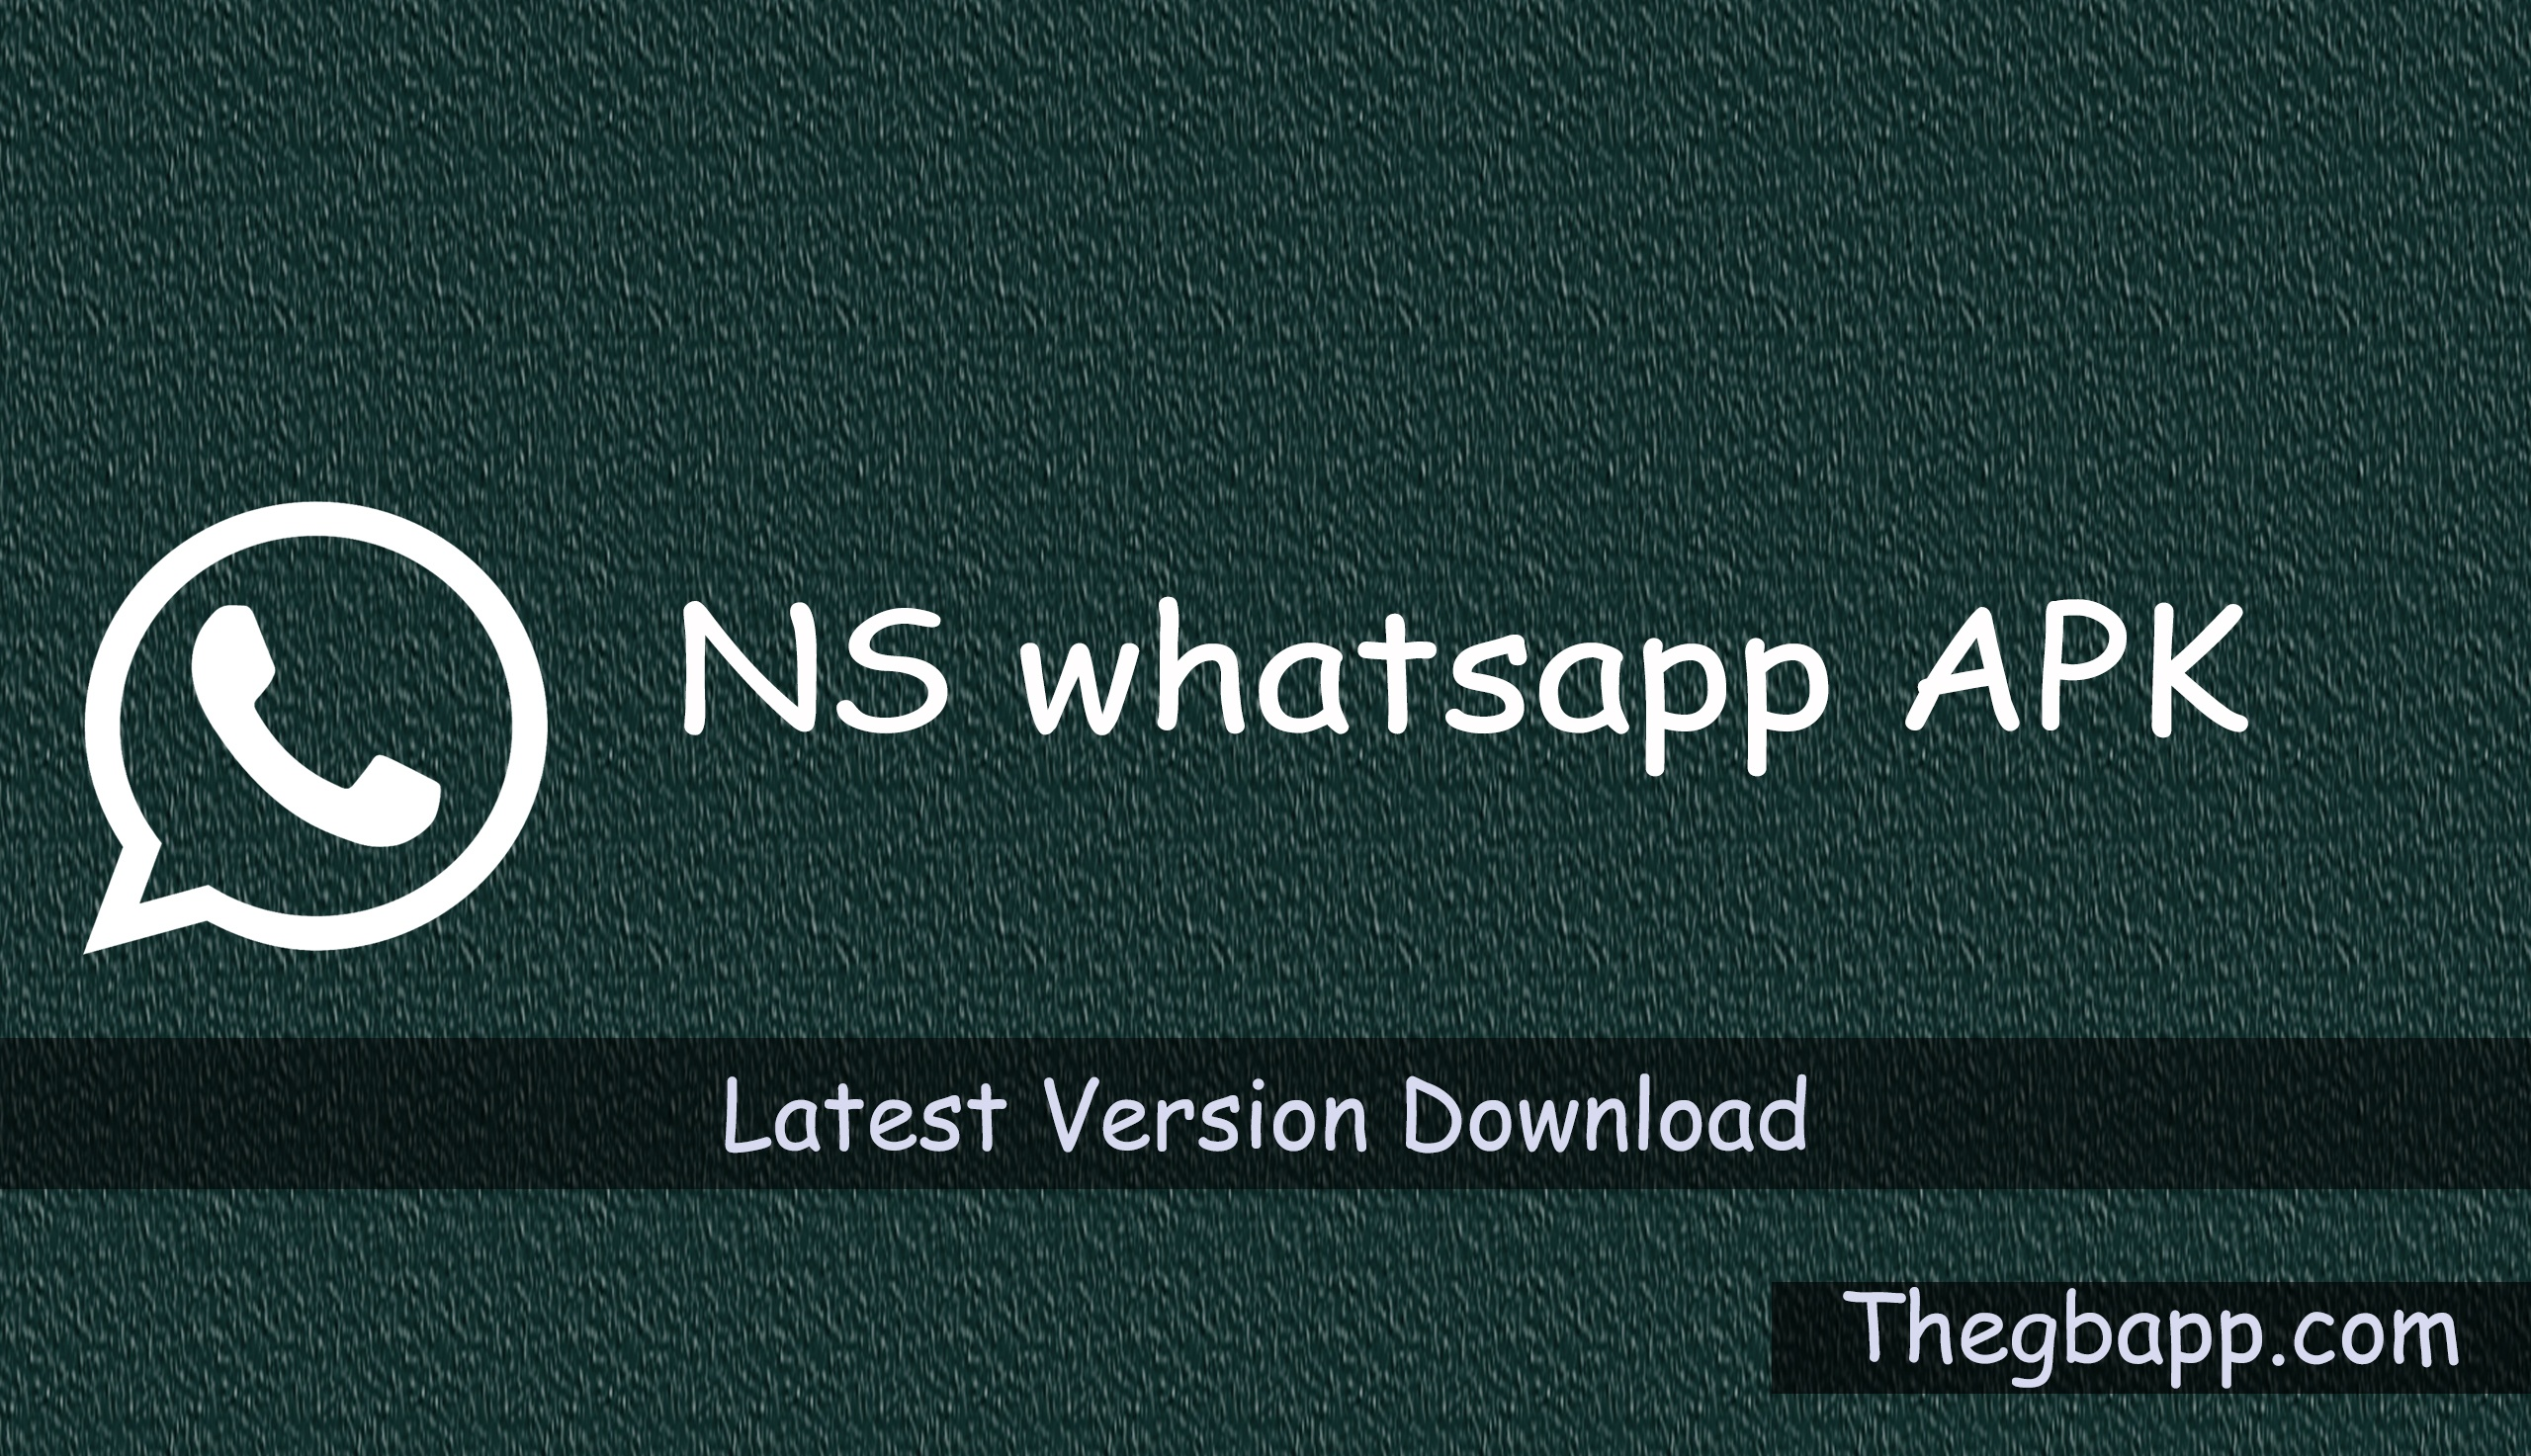 NS whatsapp APK